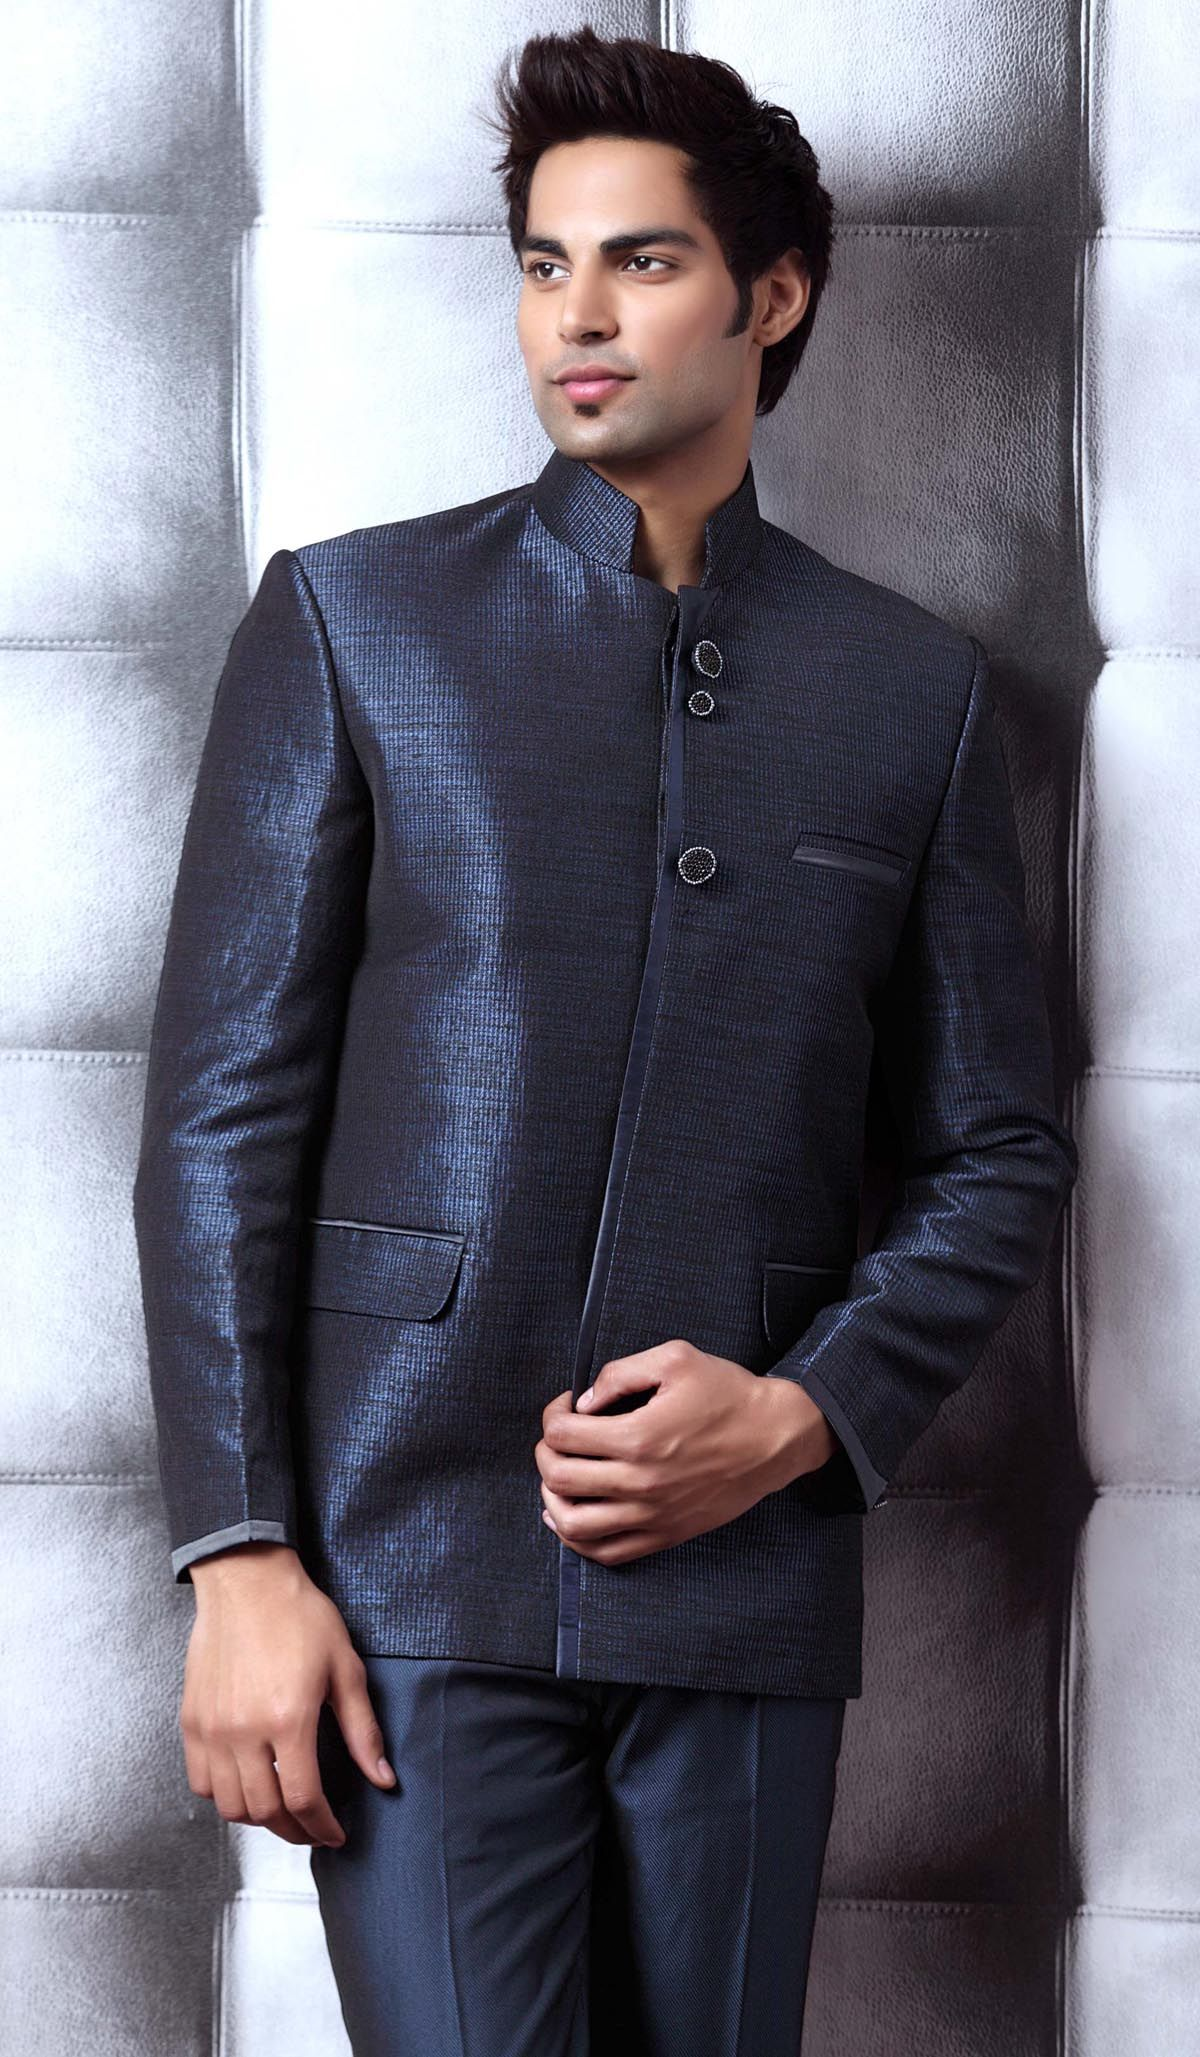 designer suits for men | Look Jodhpuri Suit, Designer Mens Suit ...